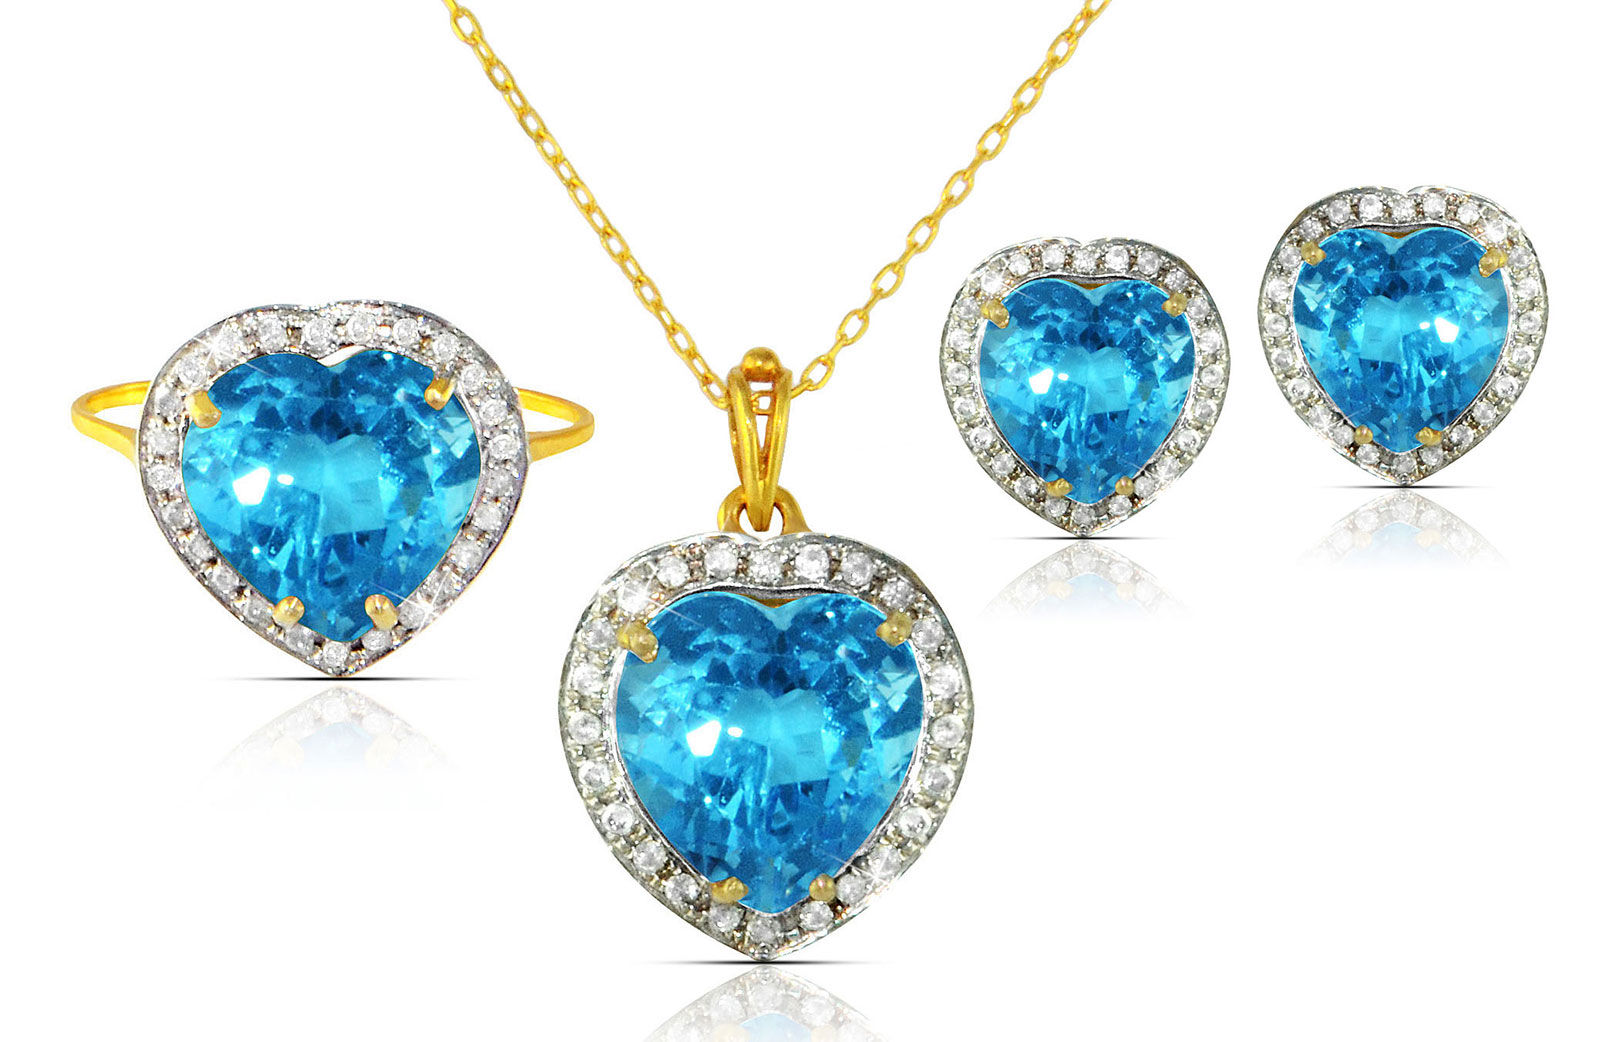 Vera Perla 18k  Gold 10mm Genuine Heart  Cut Swiss Blue Topaz 0.56Ct Genuine Diamonds Jewelry Set